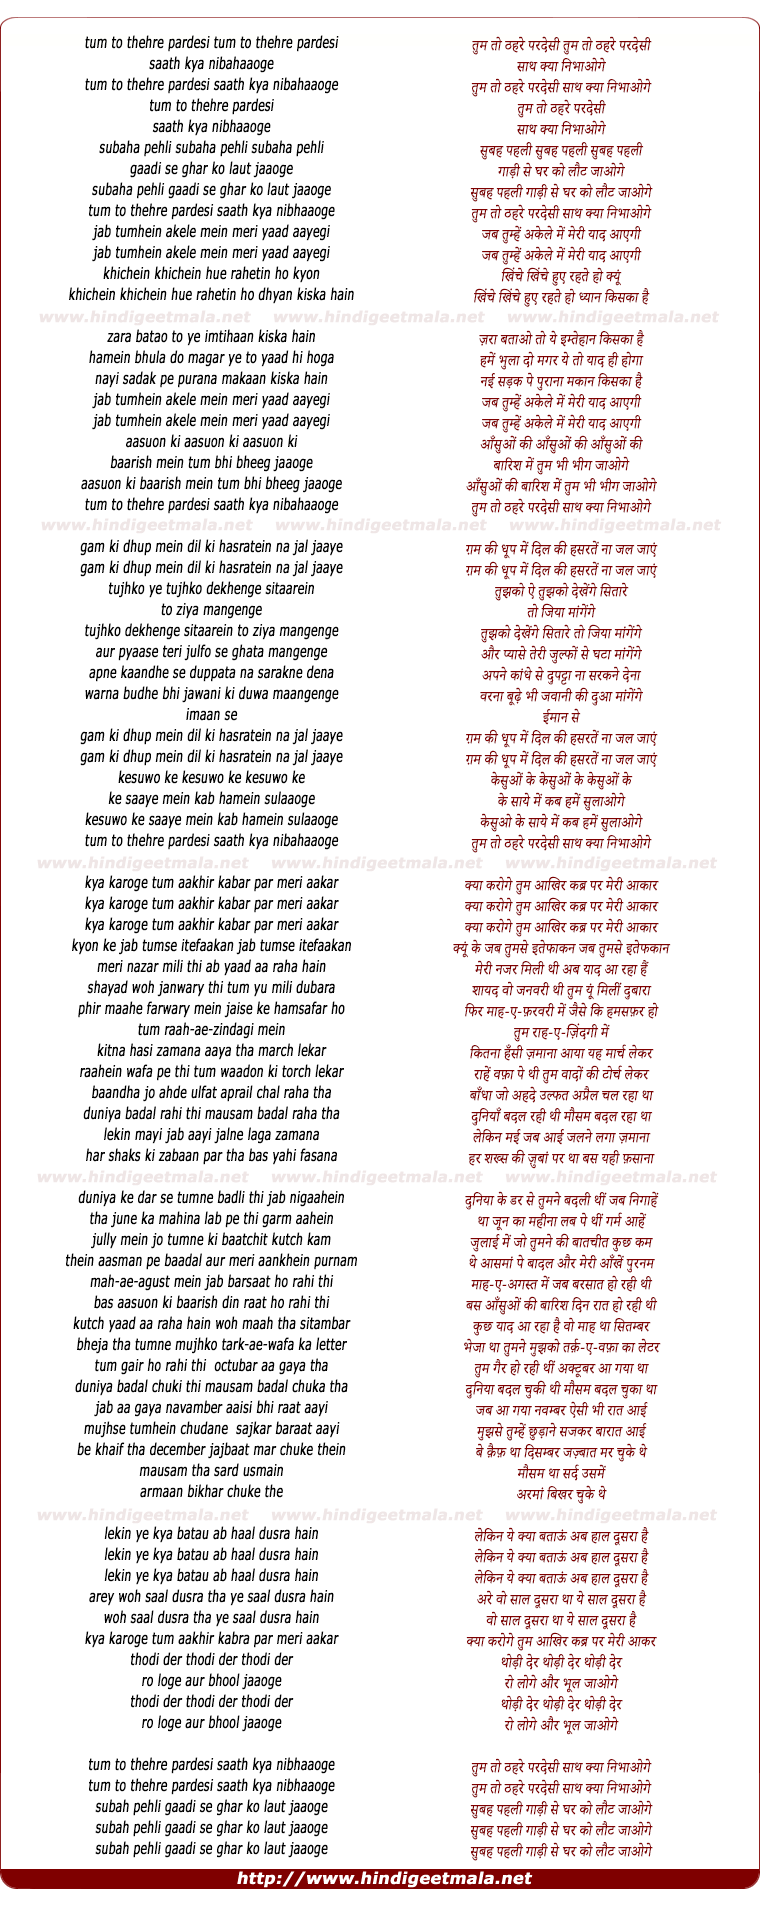 lyrics of song Tum Toh Thehre Pardesi